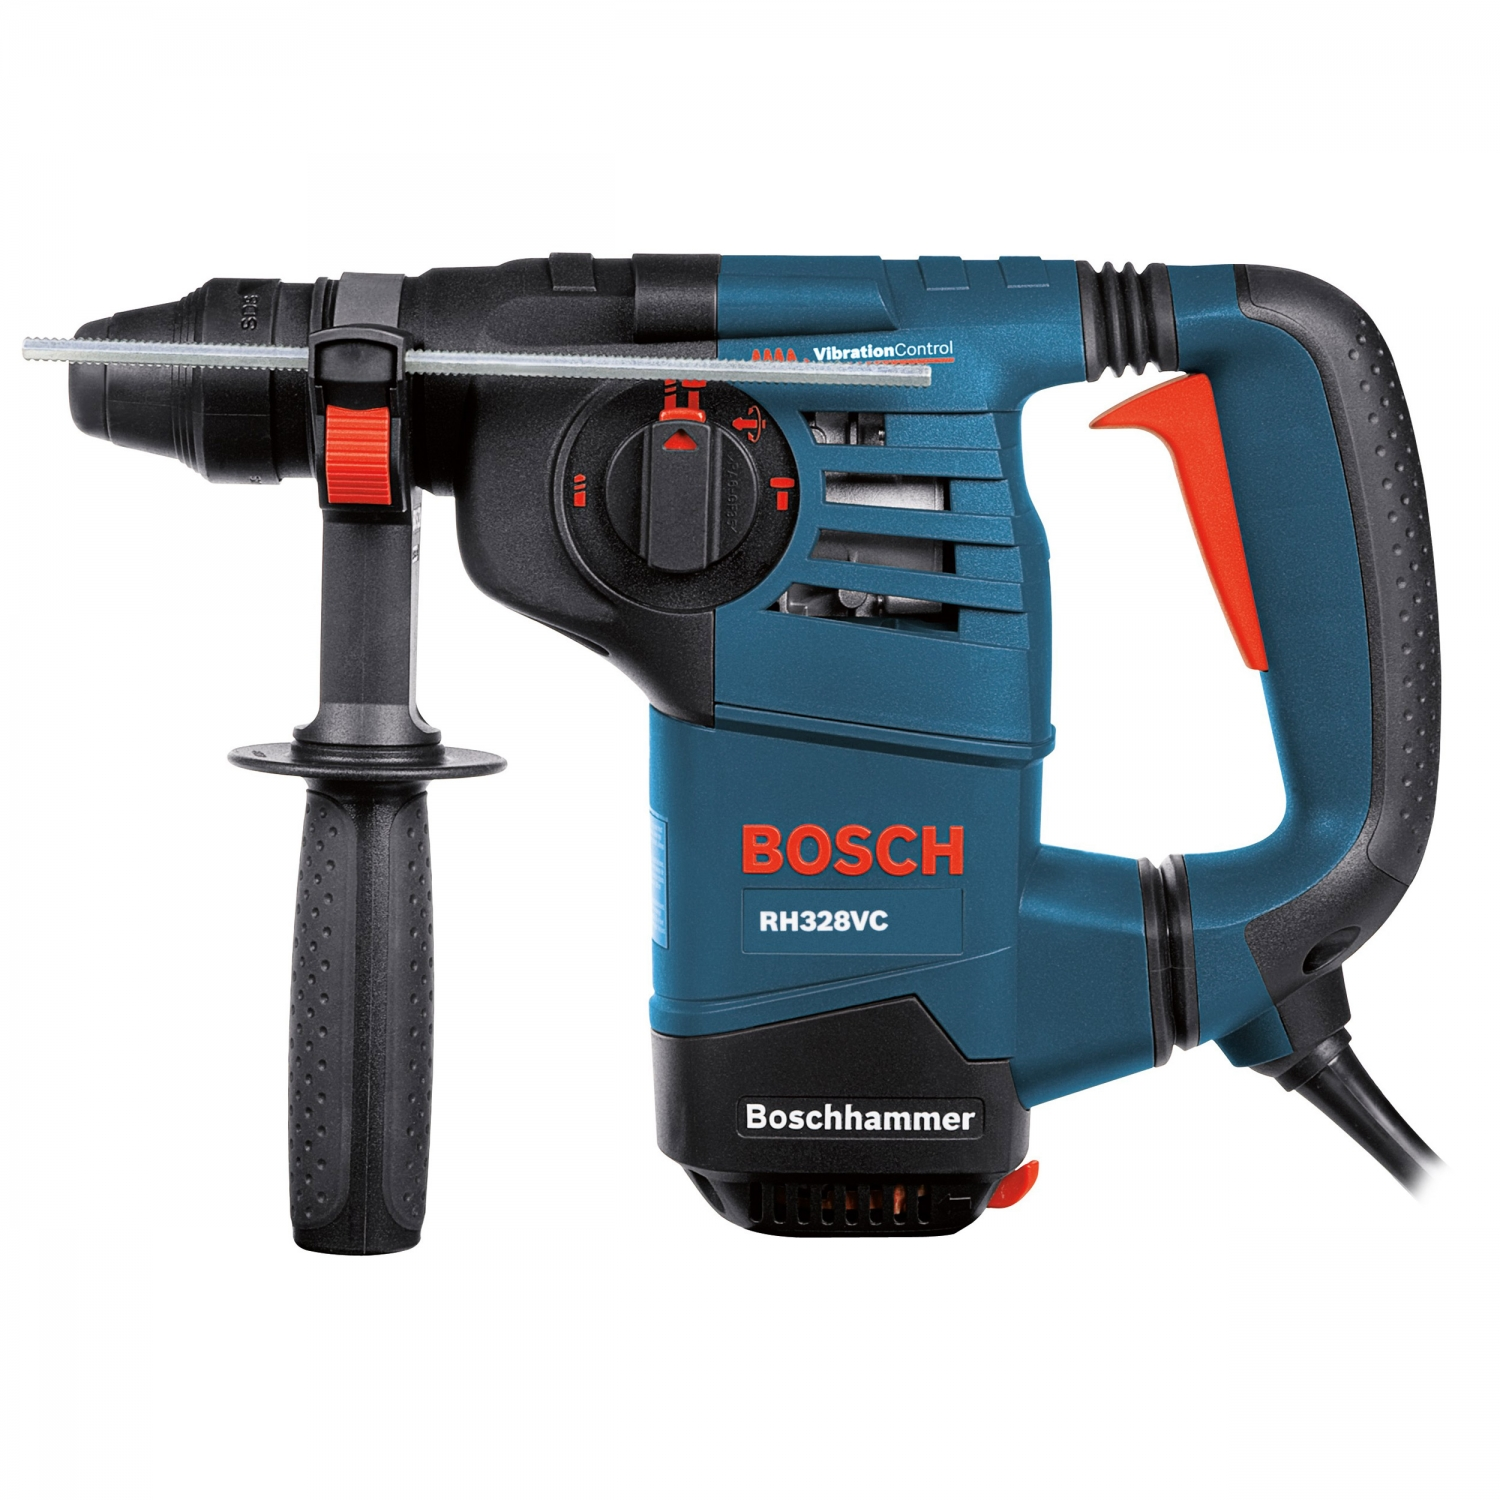 bosch tools rh328vc r 1 1 8 inch sds rotary hammer. Black Bedroom Furniture Sets. Home Design Ideas